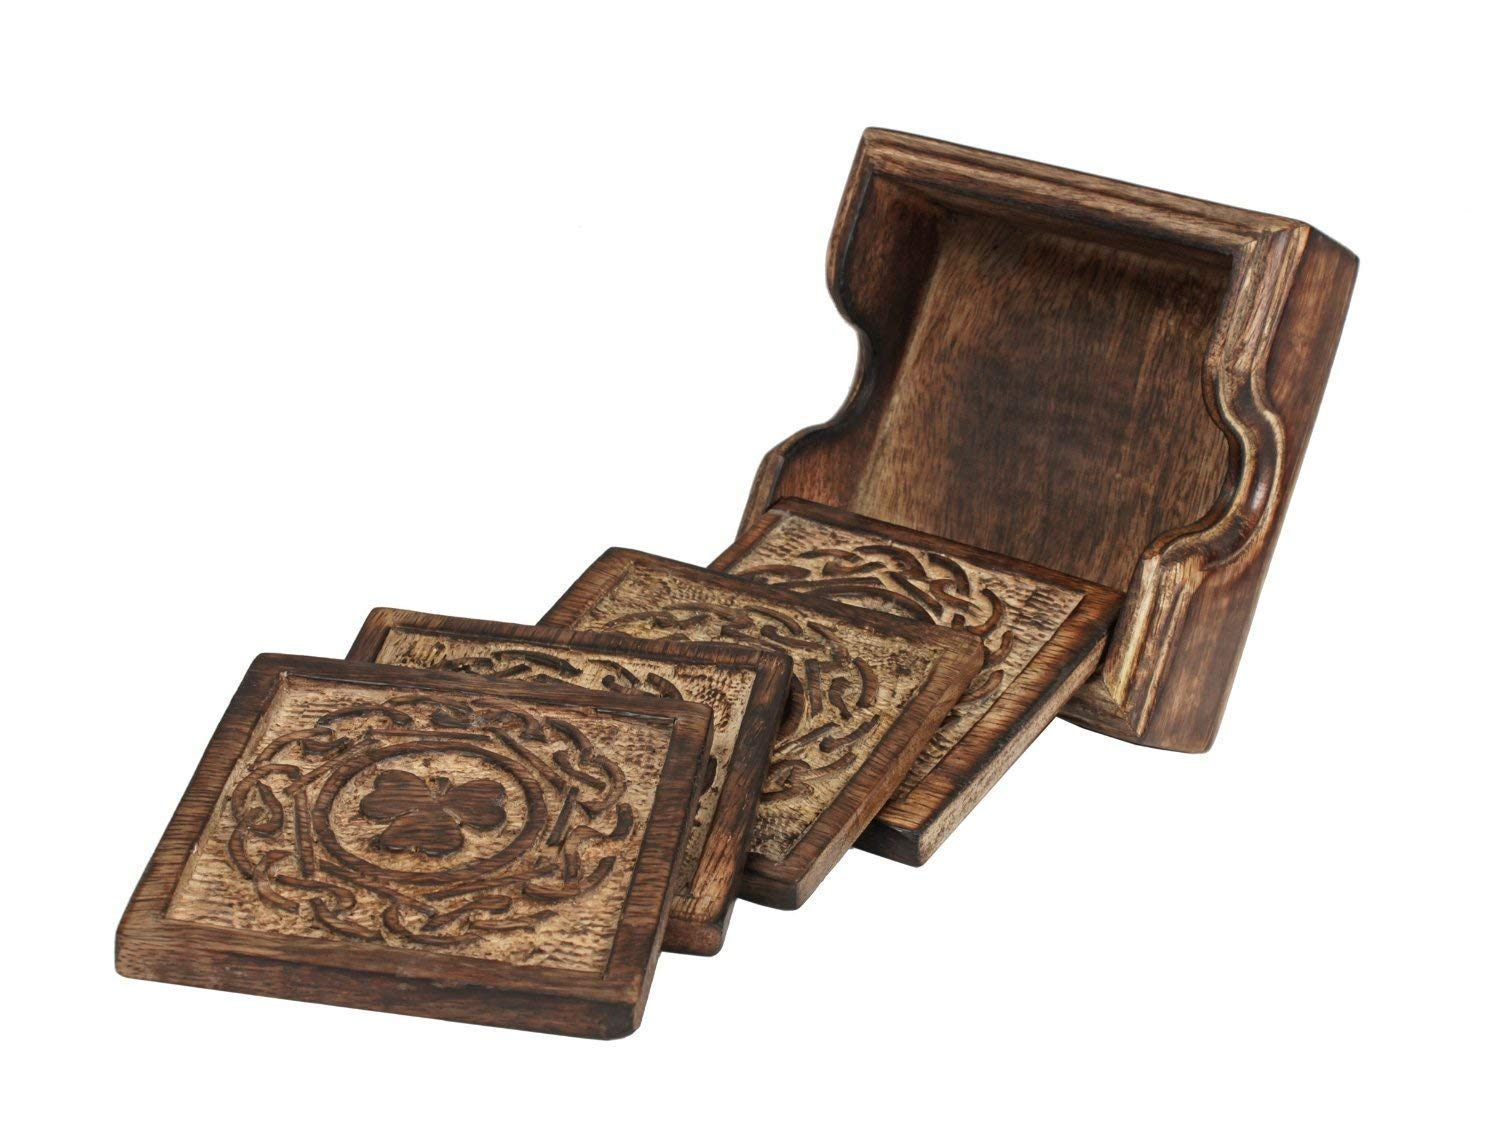 storeindya Set of 4 Wood Coasters-Rustic Finish-Absorbent Eco-Friendly Protects Furniture from Water Stains and Damages Decorations Gifts (Design 4) Icrafts COMINHKPR96149